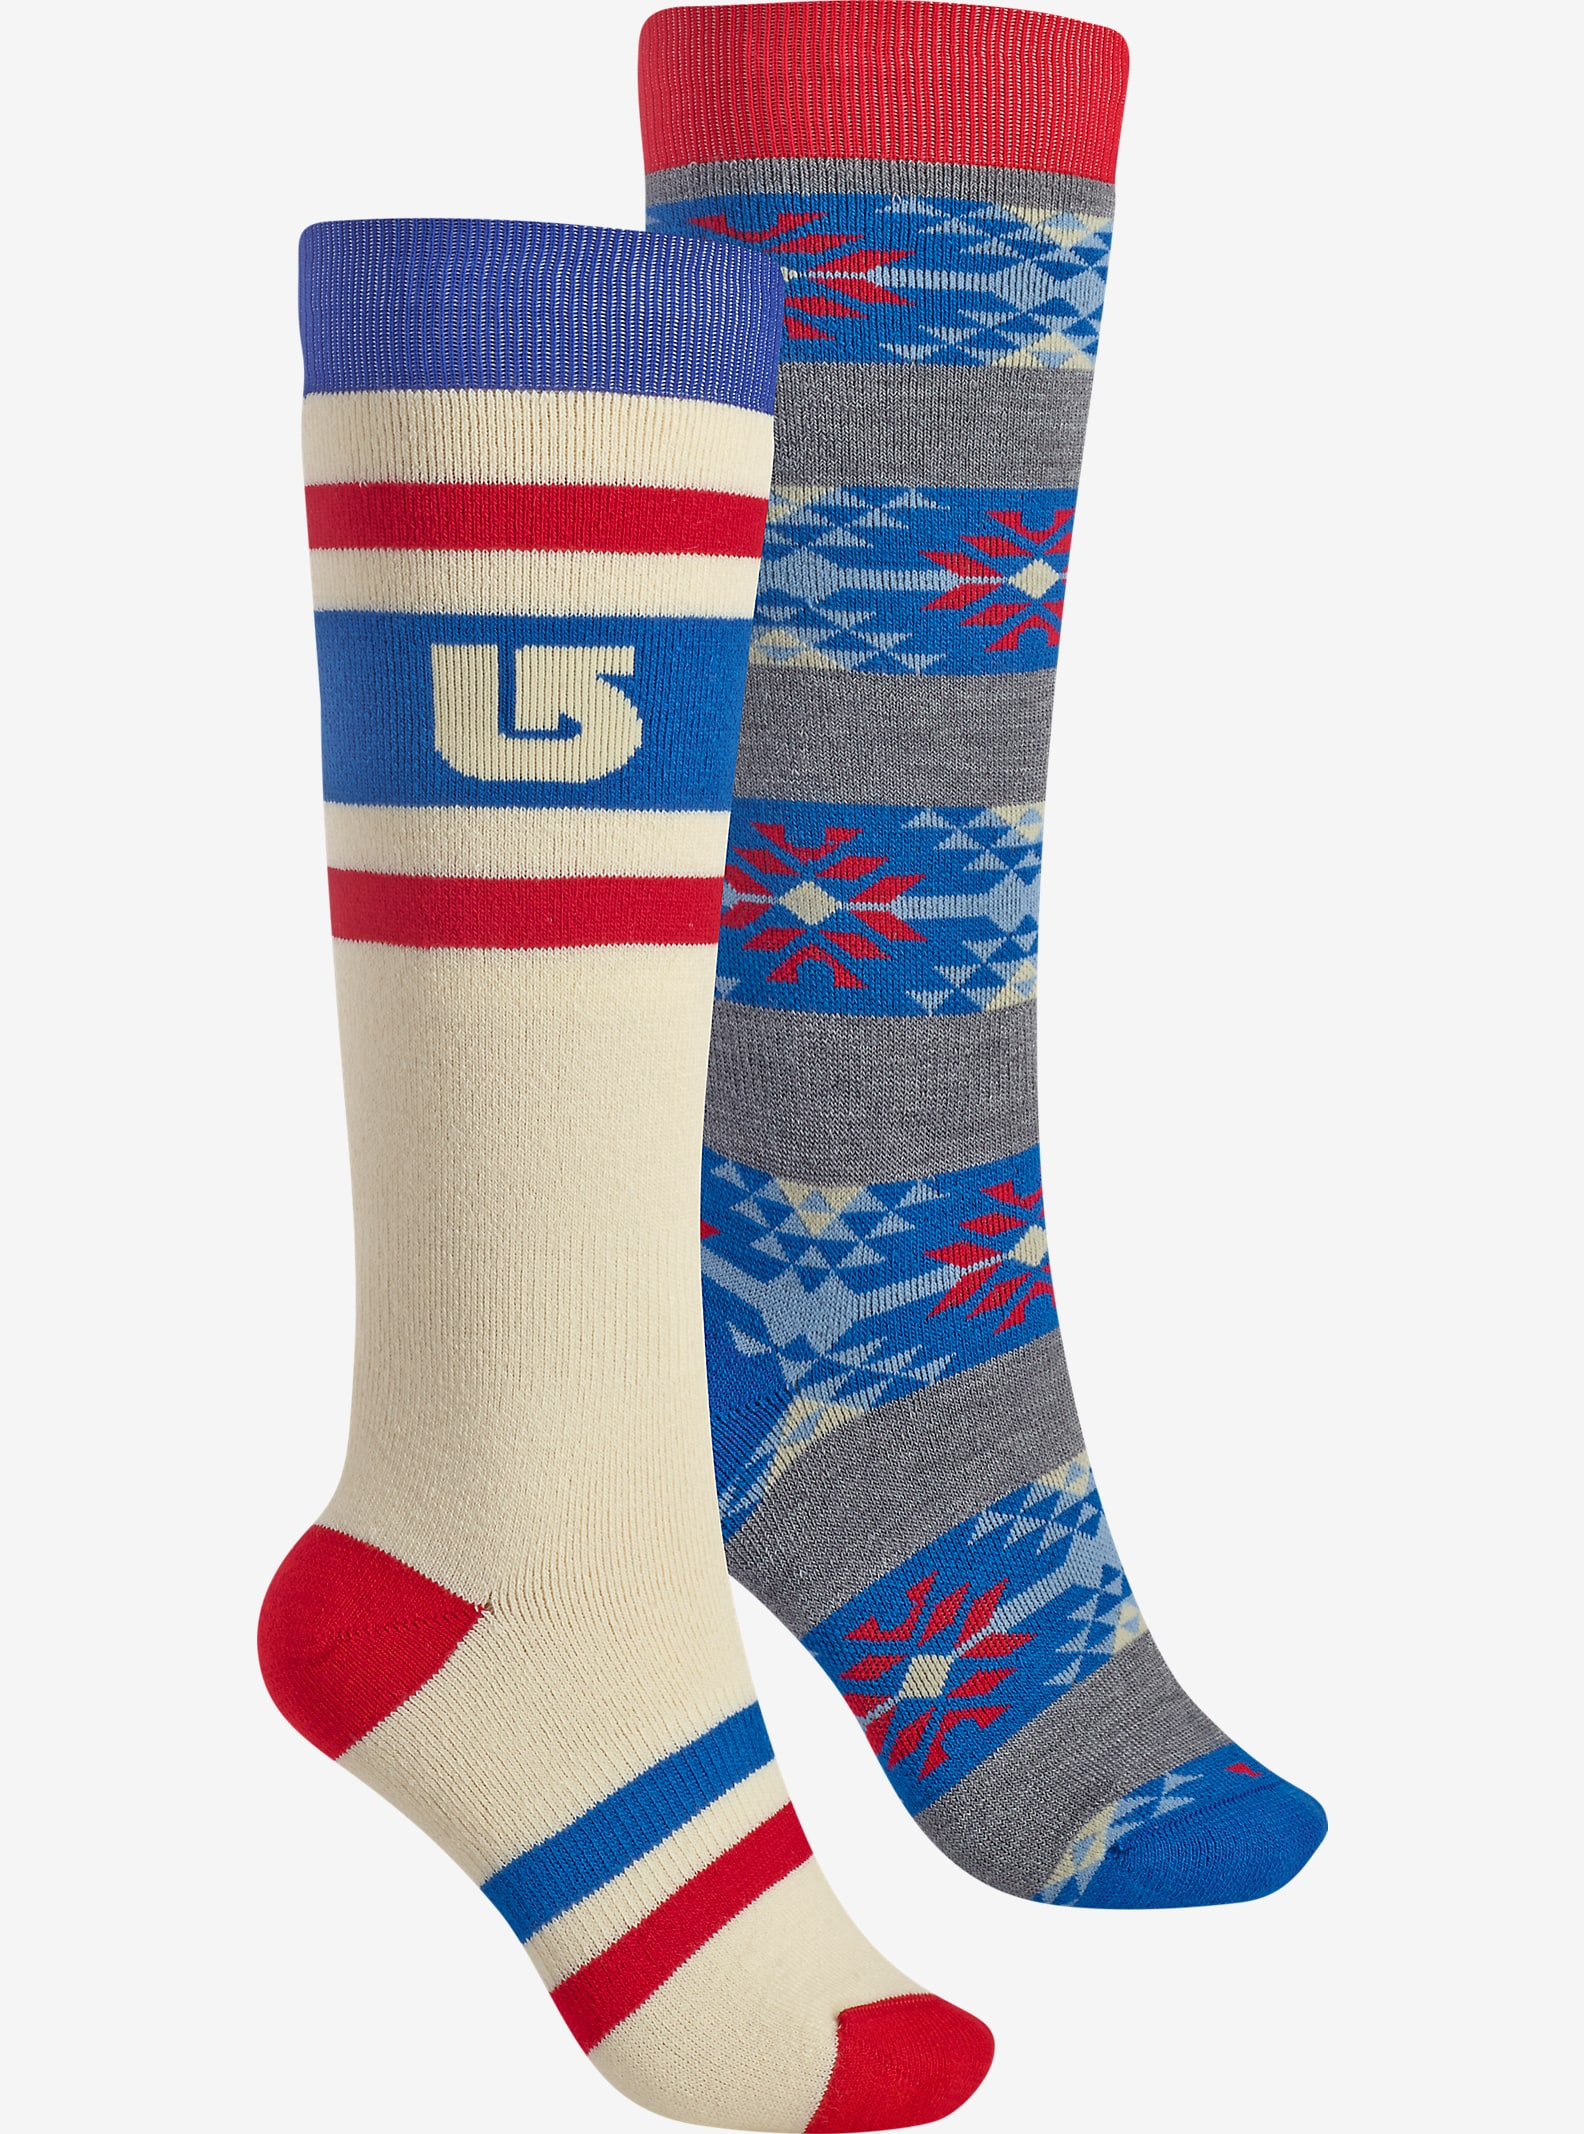 Burton Women's Weekend Sock 2 Pack shown in Canvas